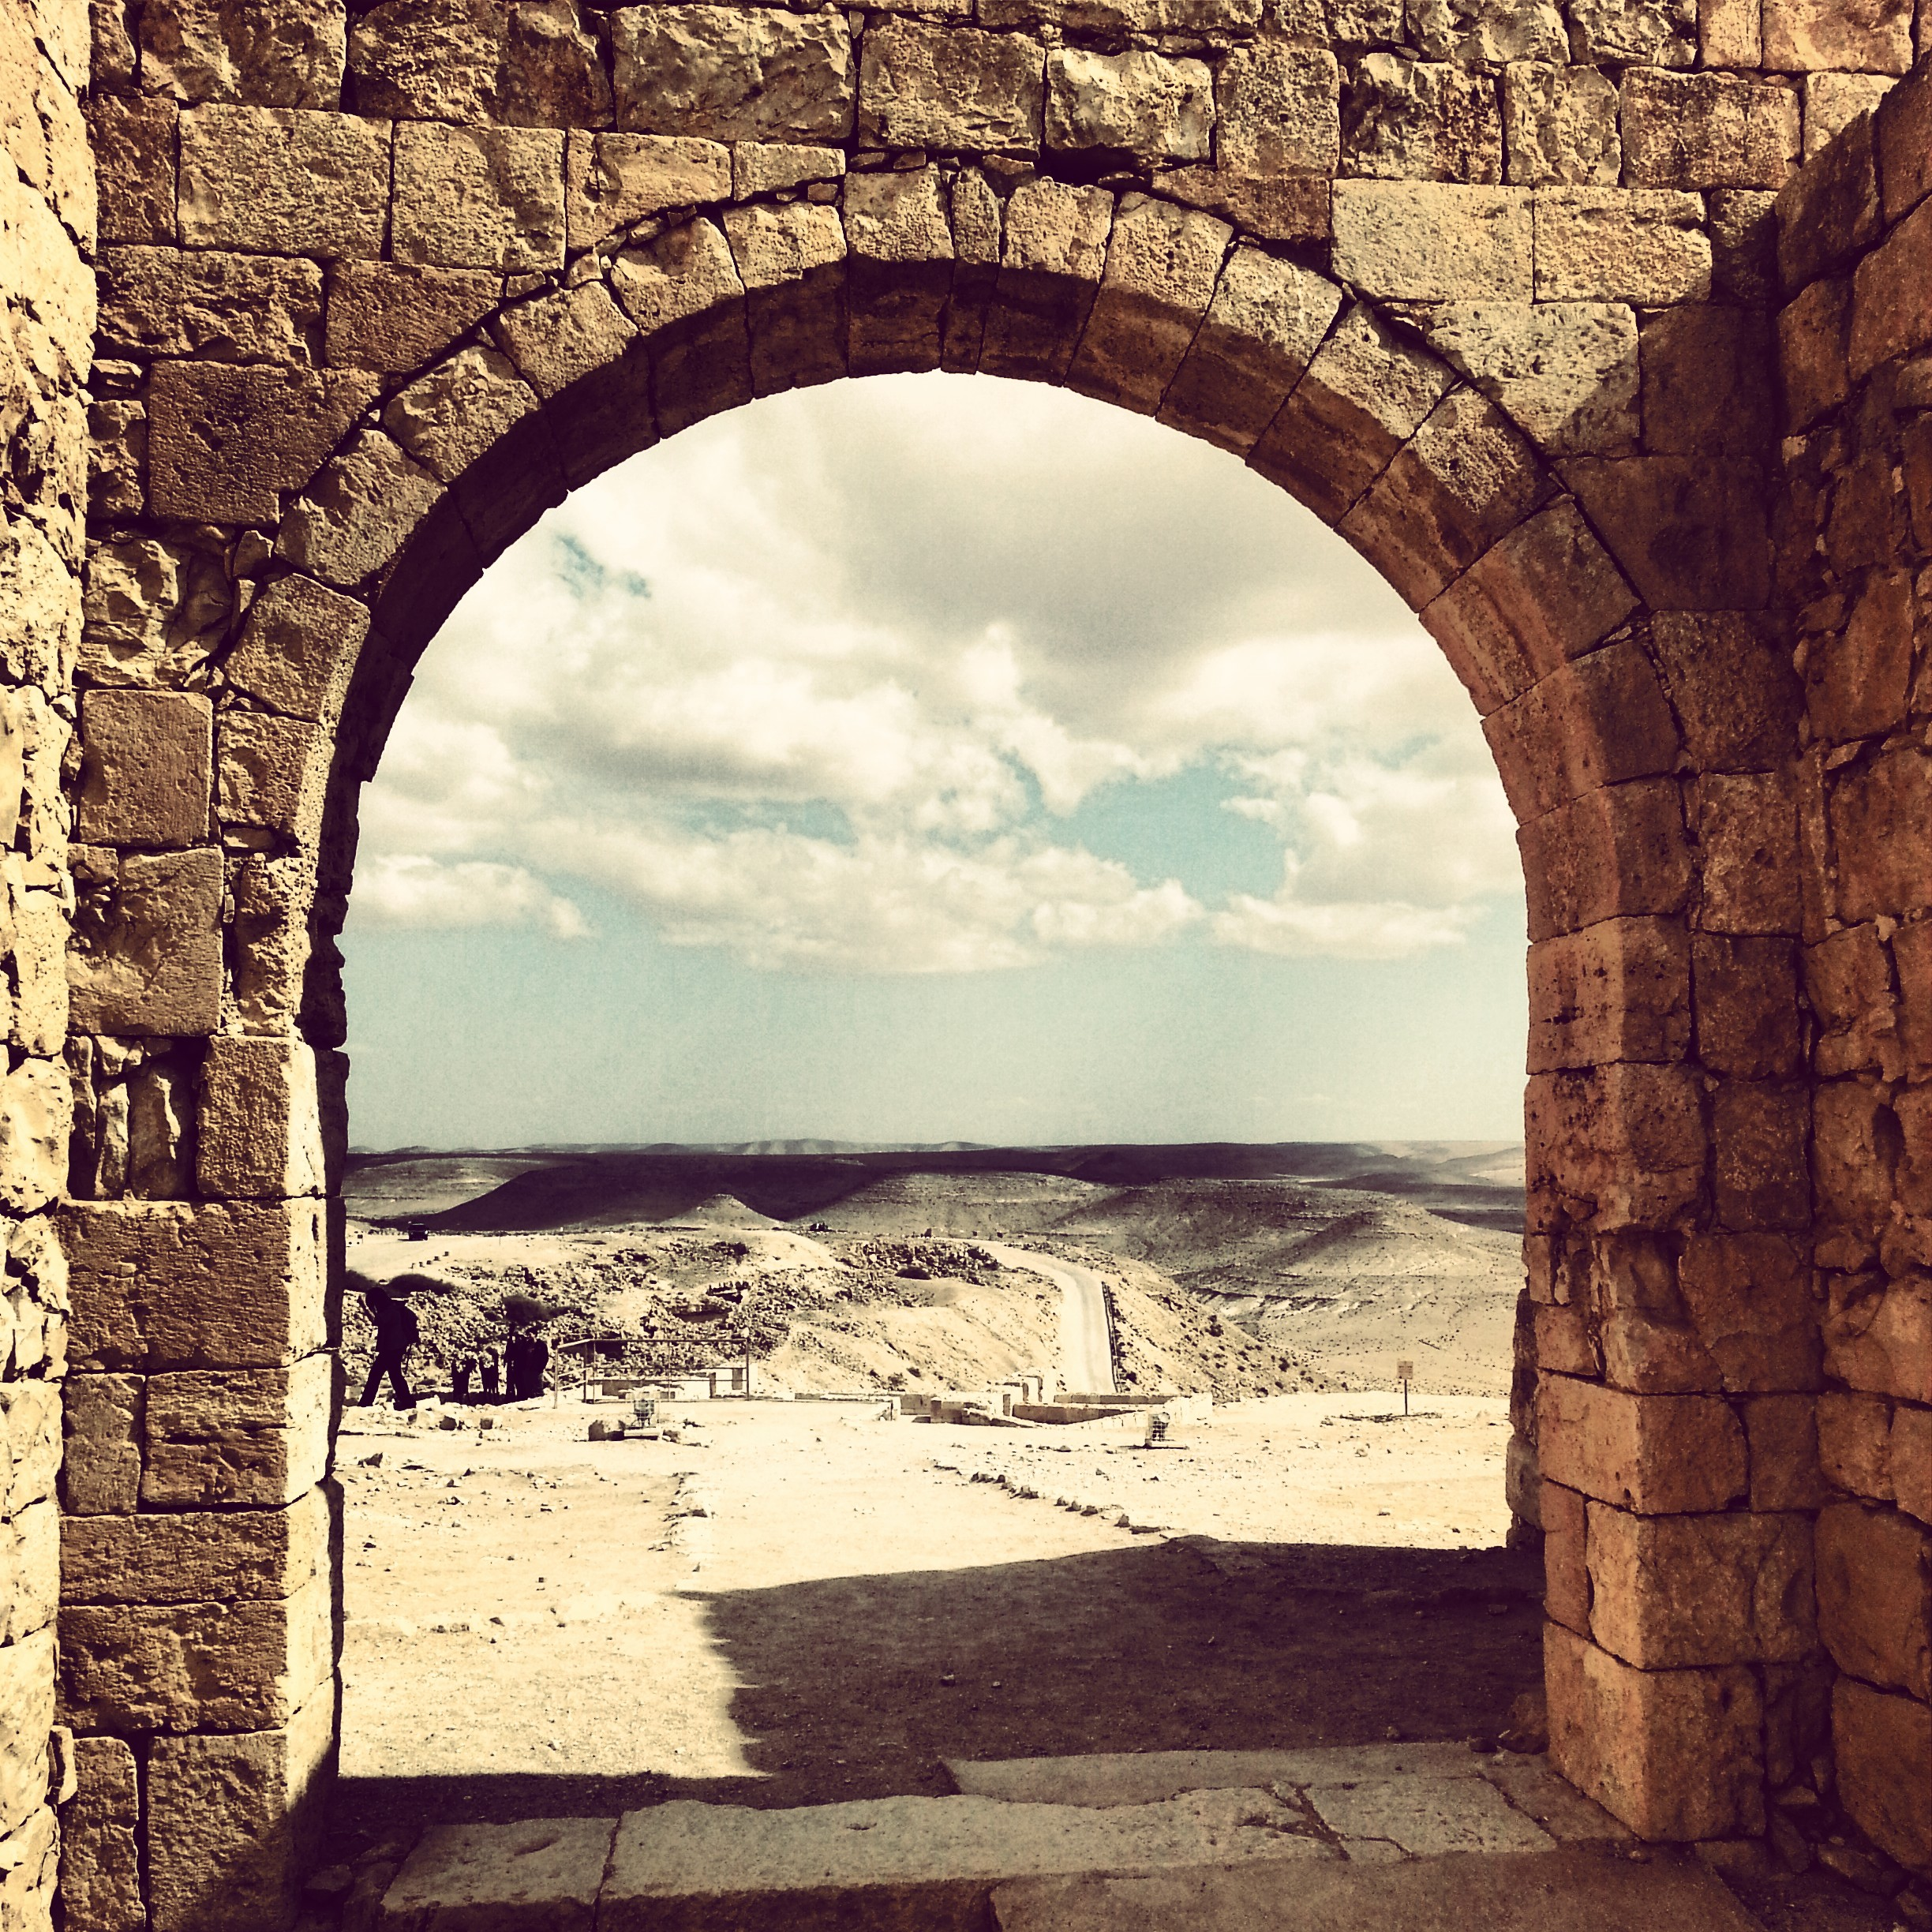 Avdat - view from within the fortified area